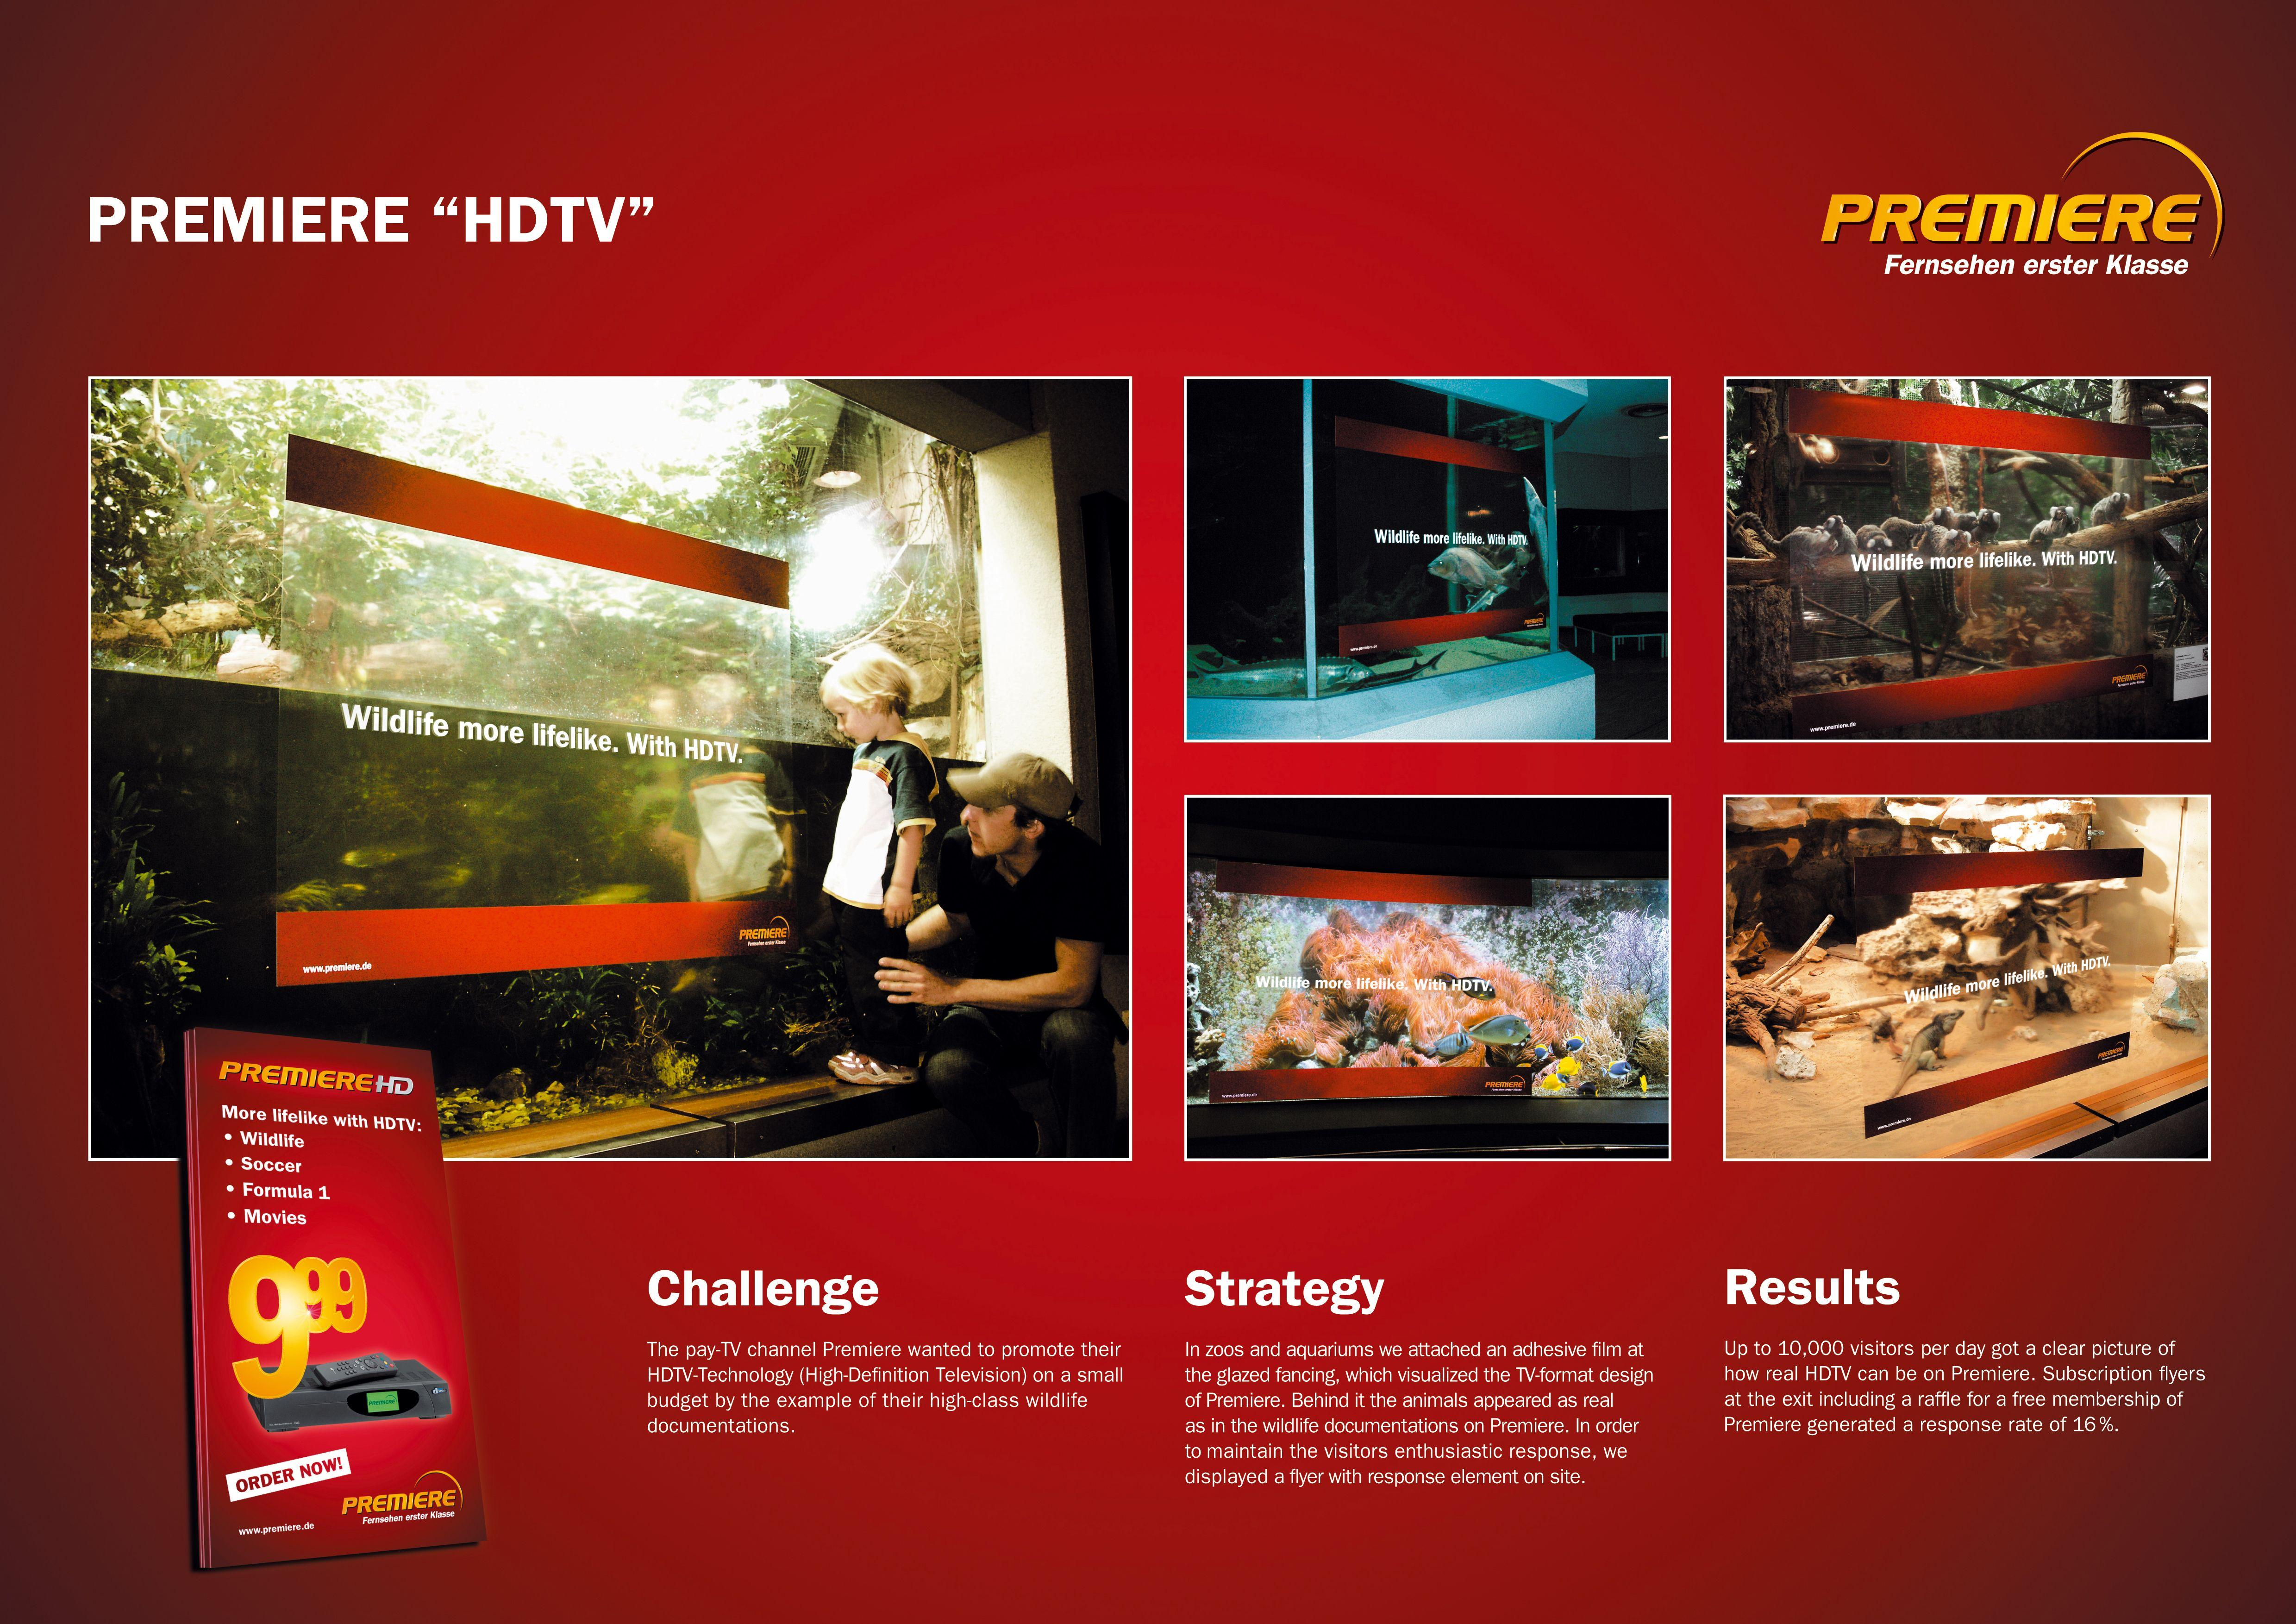 kima tv station challenges and strategies